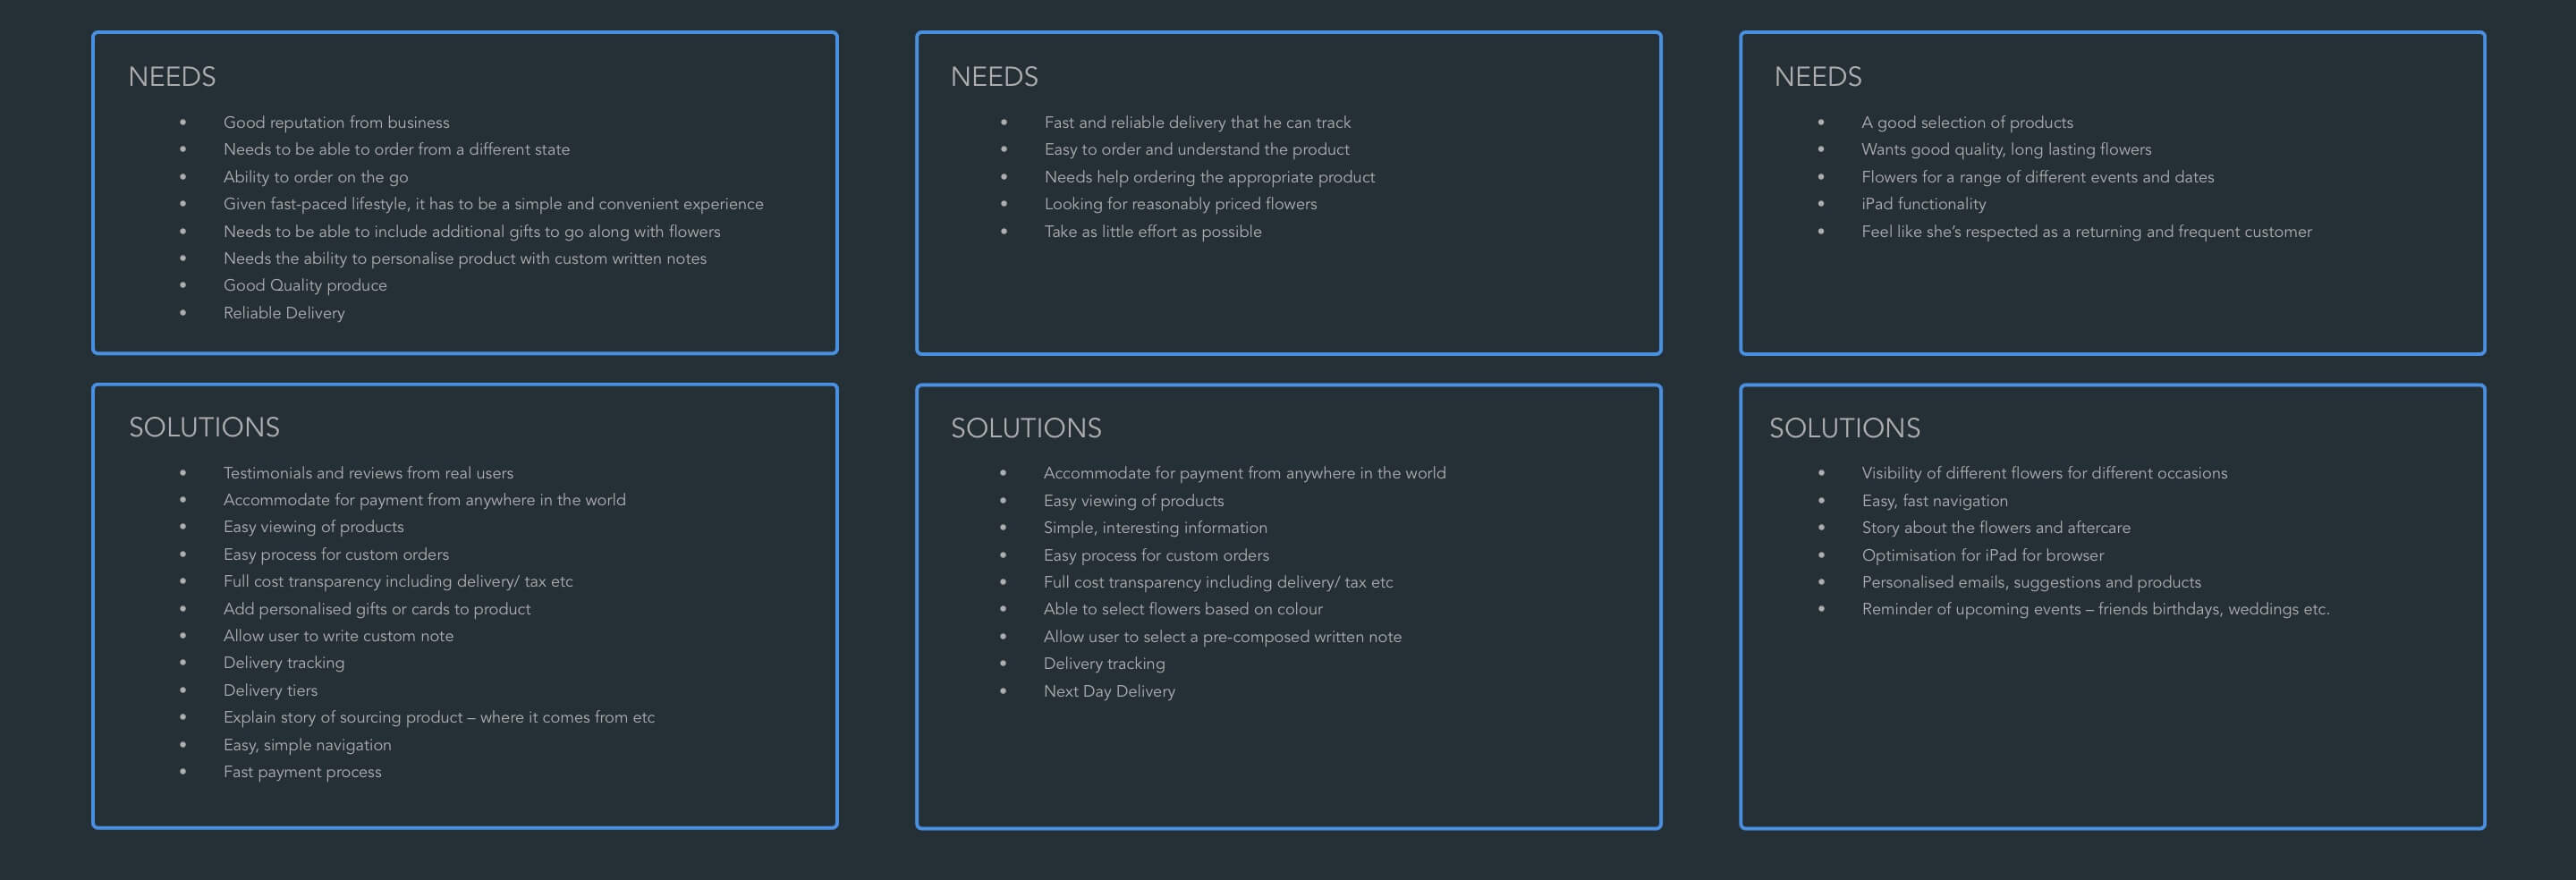 The needs and solutions of each persona